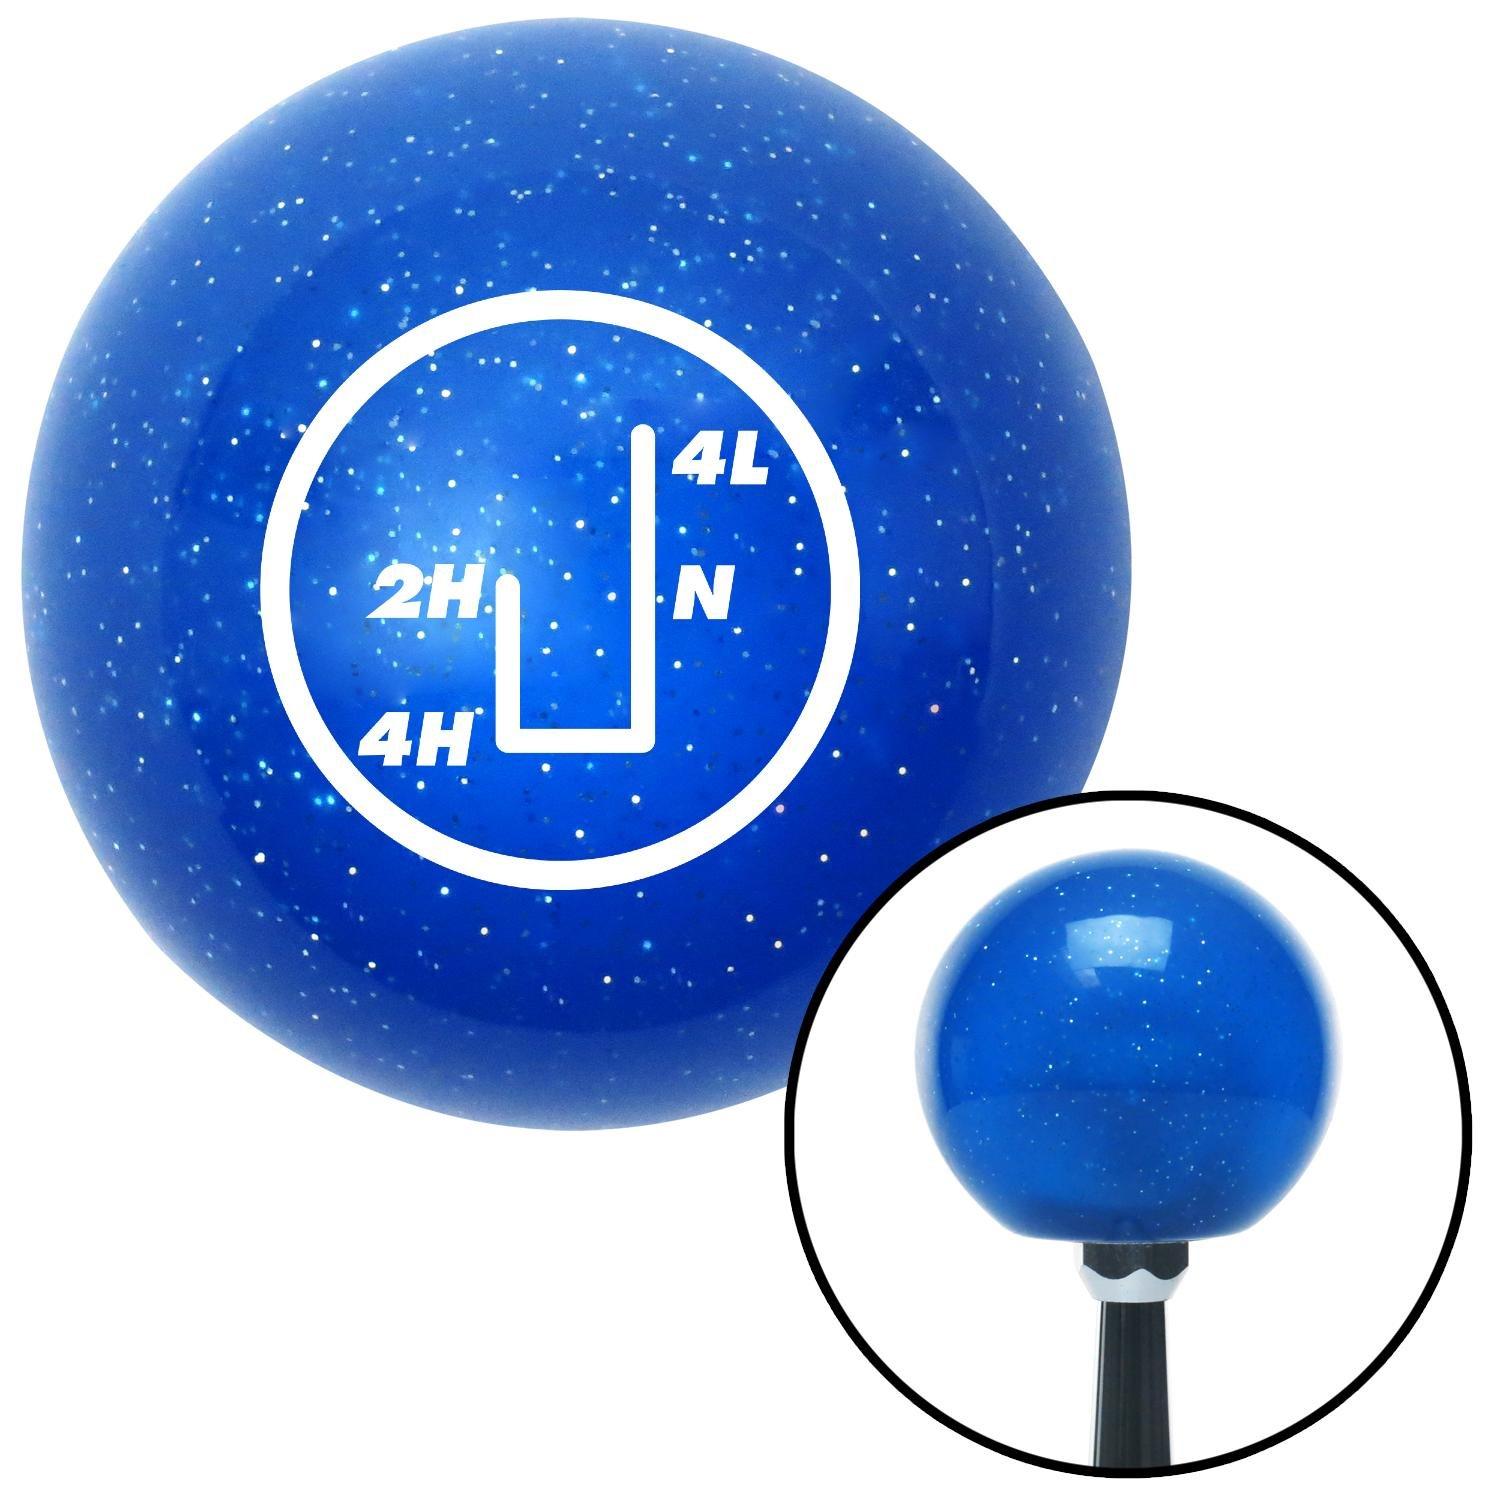 American Shifter 20100 Blue Metal Flake Shift Knob with 16mm x 1.5 Insert White Transfer Case 3